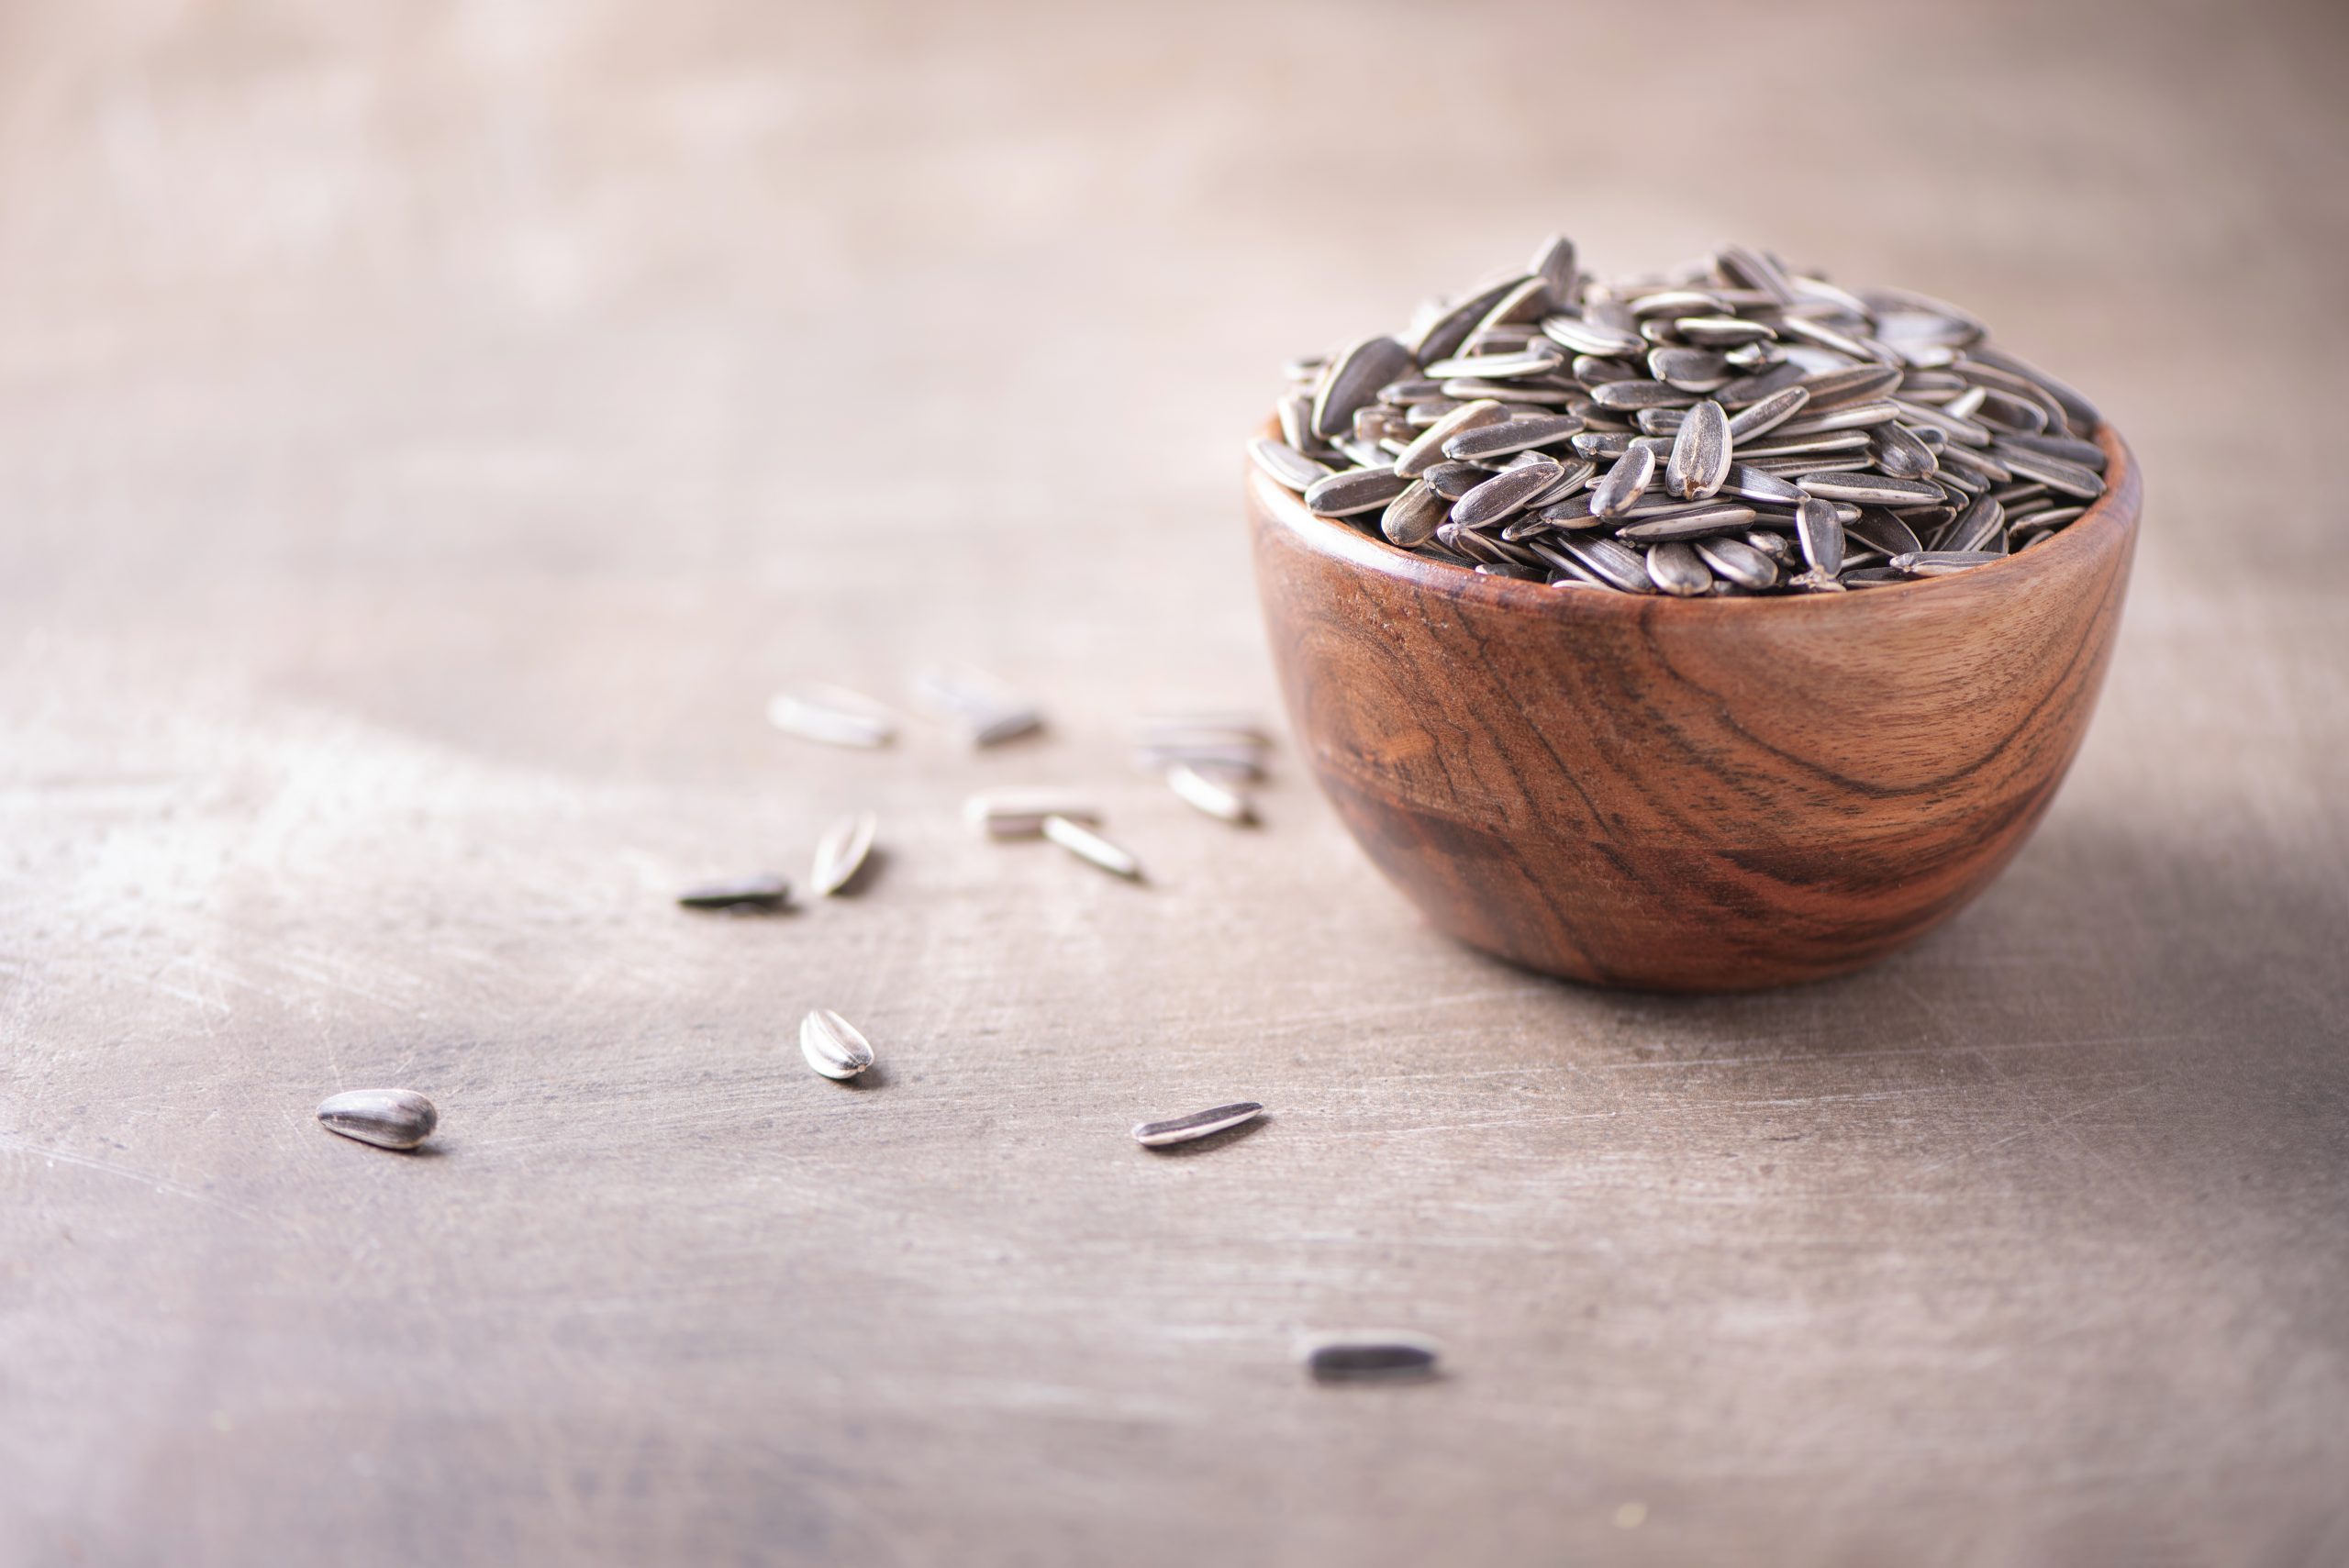 Sunflower seeds in wooden bowl on wood textured background. Copy space. Superfood, vegan, vegetarian food concept. Macro of sunflower seeds, selective focus. Healthy snack.